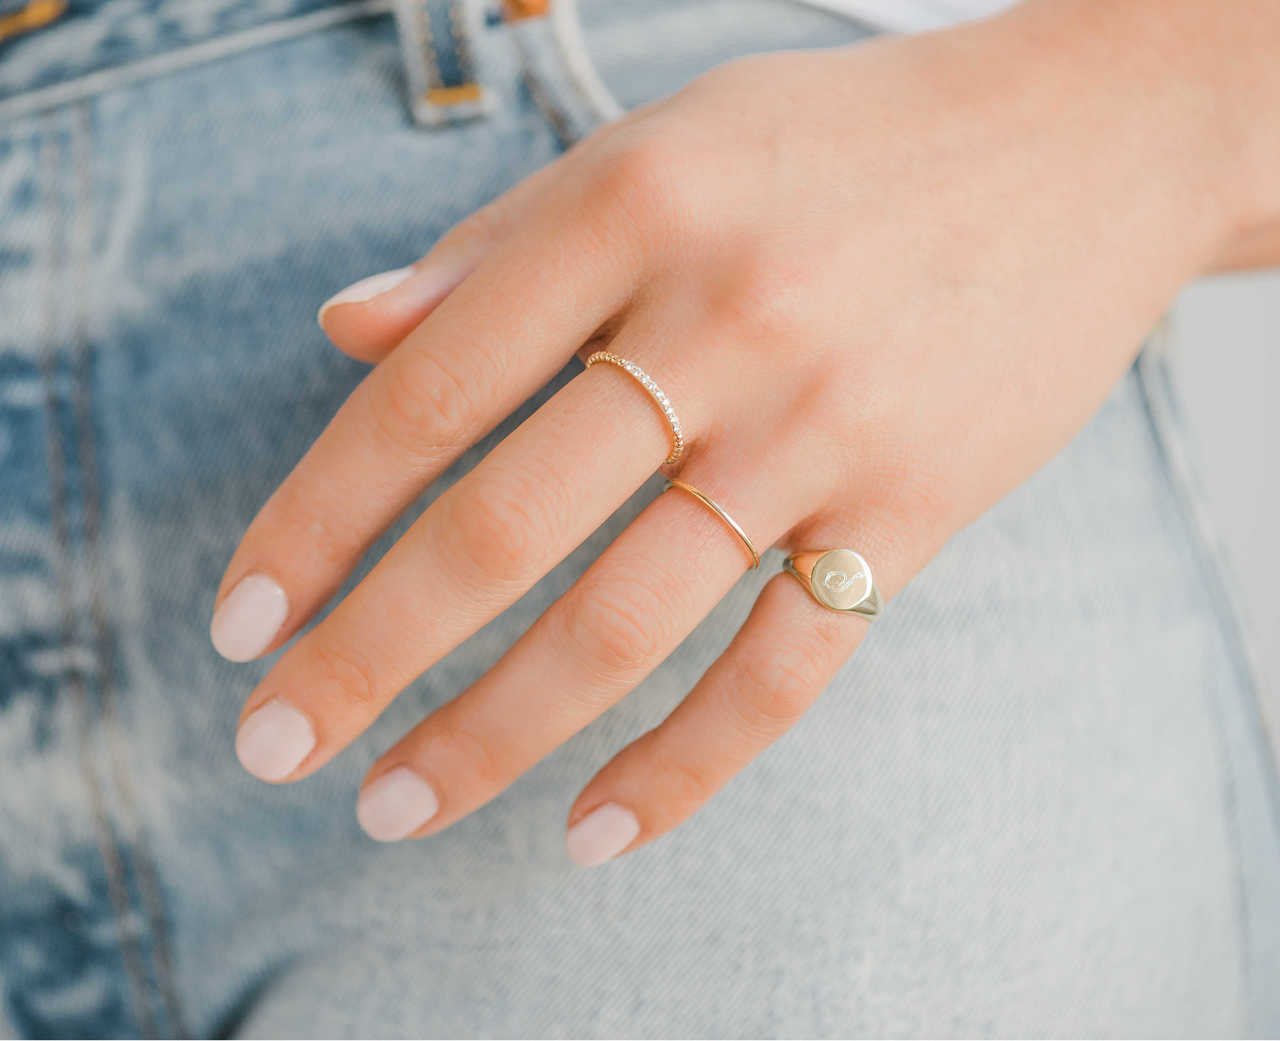 Zoe Lev 14k Gold Small Engravable Signet Ring Weekly Finds + The Prettiest Way to Dress Up Your Holiday Looks for Under $8